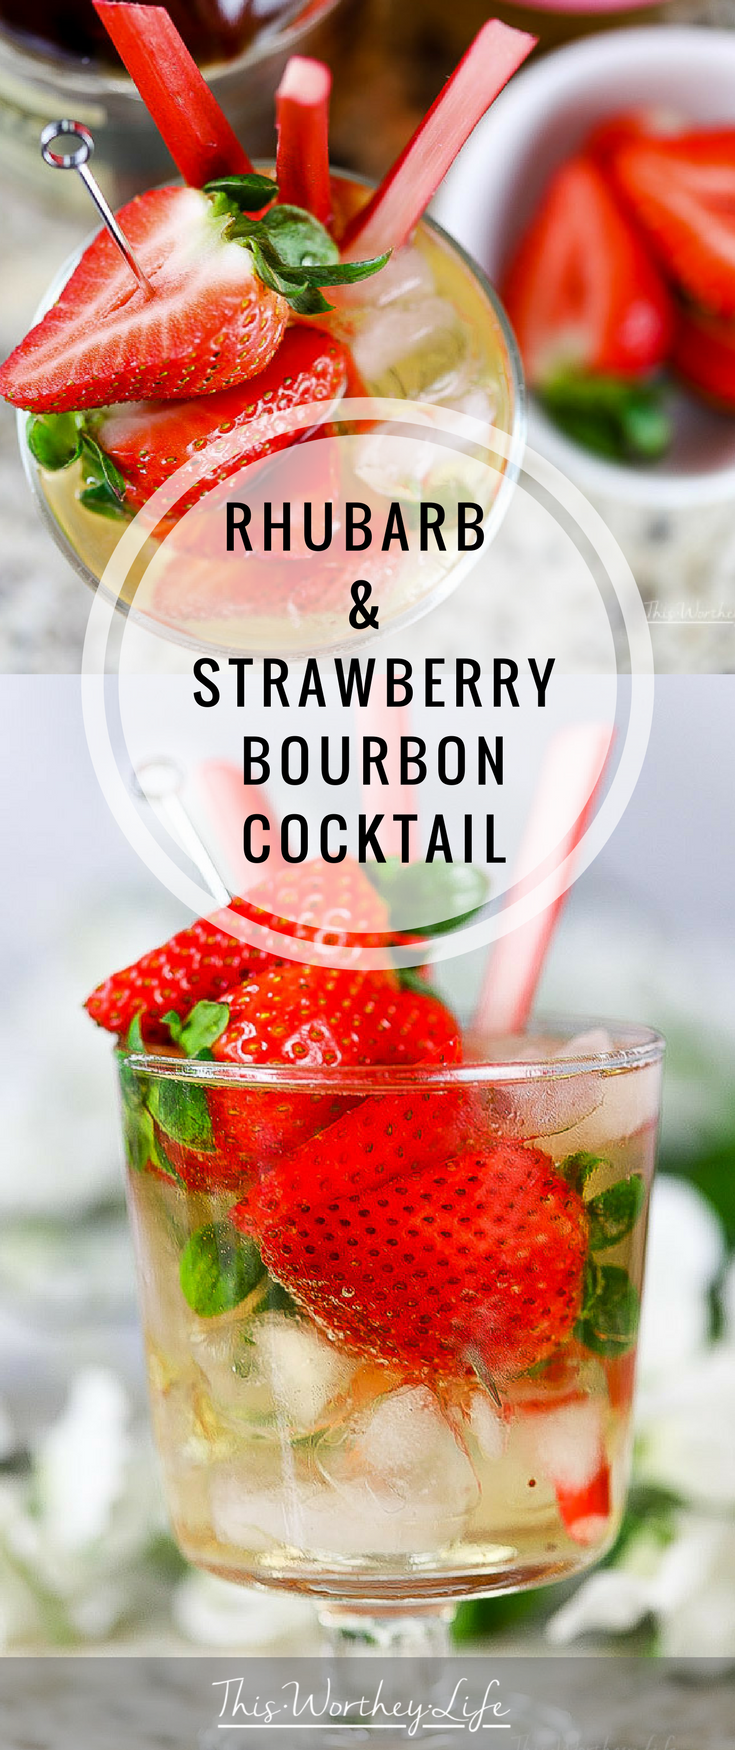 Summer is the perfect time to experiment with new rhubarb recipes. And this doesn't exclude cocktails. With fresh strawberries and rhubarb a dime a dozen, fancy your summertime drinking with this bourbon cocktail. Our Rhubarb & Strawberry Bourbon Cocktail is one you will want to try this year and make again and again. Grab the recipe on the blog, and enjoy this summertime cocktail!